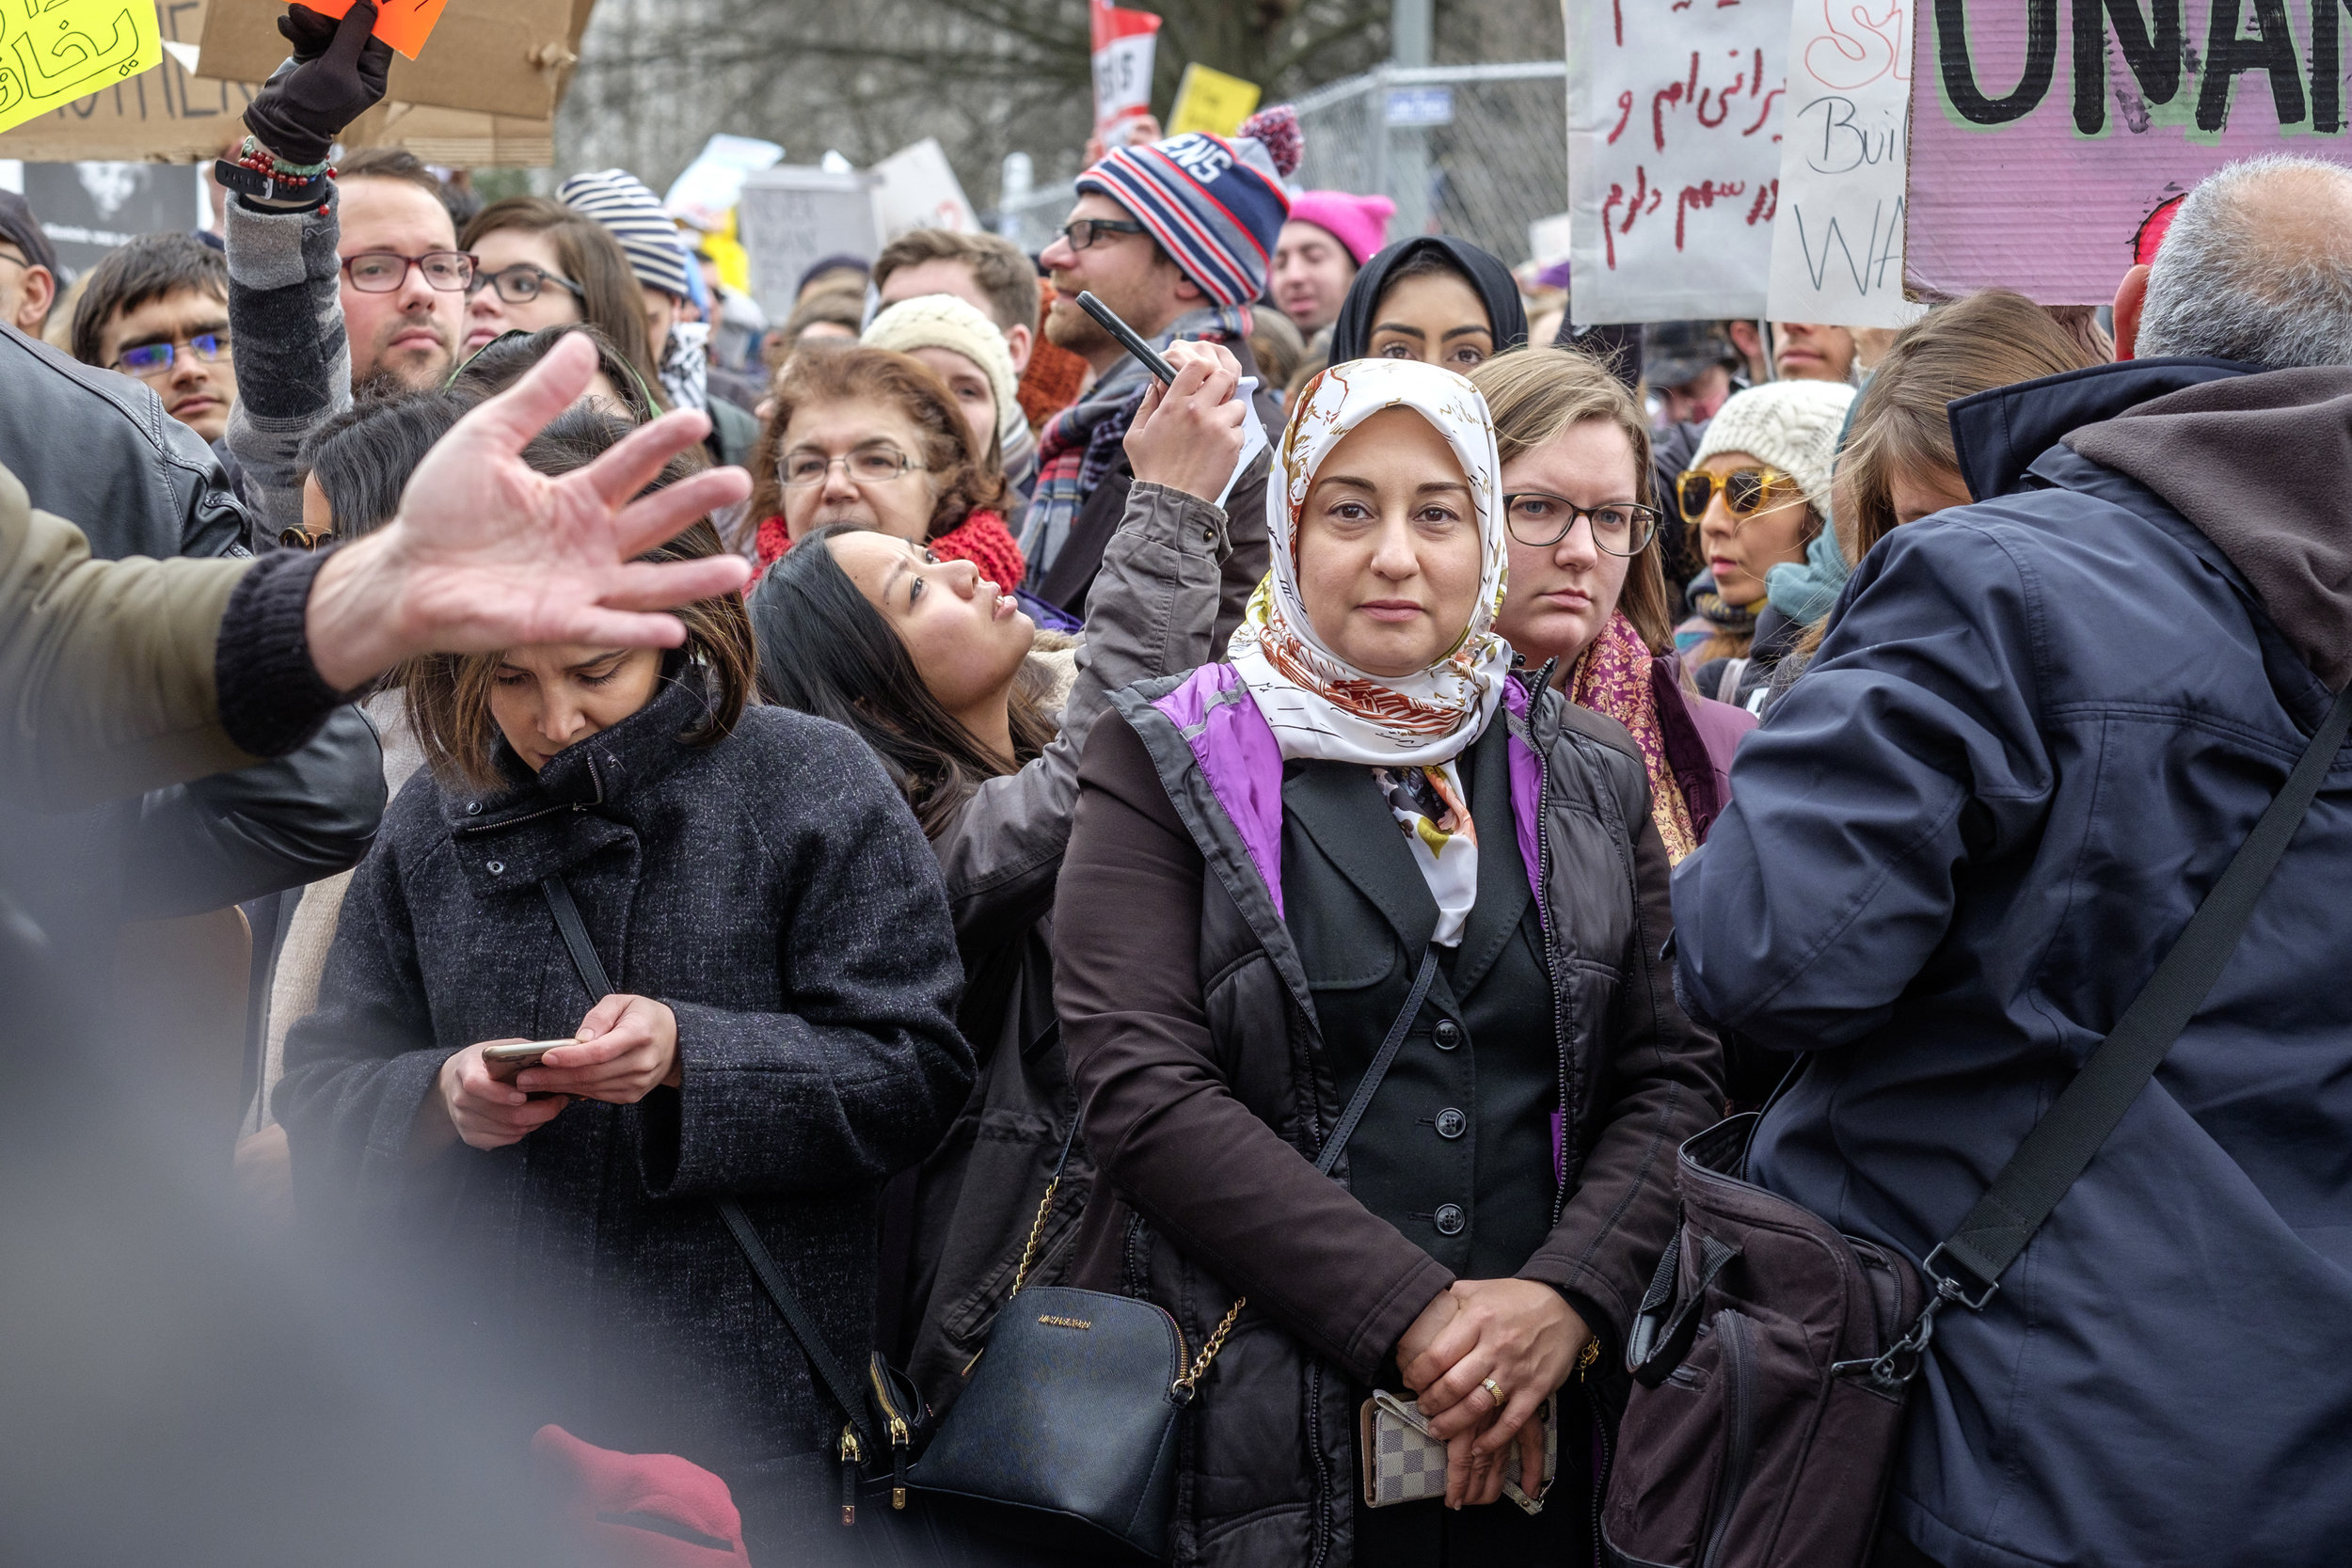 "A woman is seen at the first Anti Immigration Ban rally in front of the White House on Saturday, January 29, 2017 in Washington, DC. Thousands gathered to protest Trump's executive order banning immigration by refugees and foreign nationals from seven predominantly Muslim countries into the United States. Demonstrators marched from the White House to the U.S. Capitol chanting ""Say it loud, say it clear, refugees are welcome here!"""